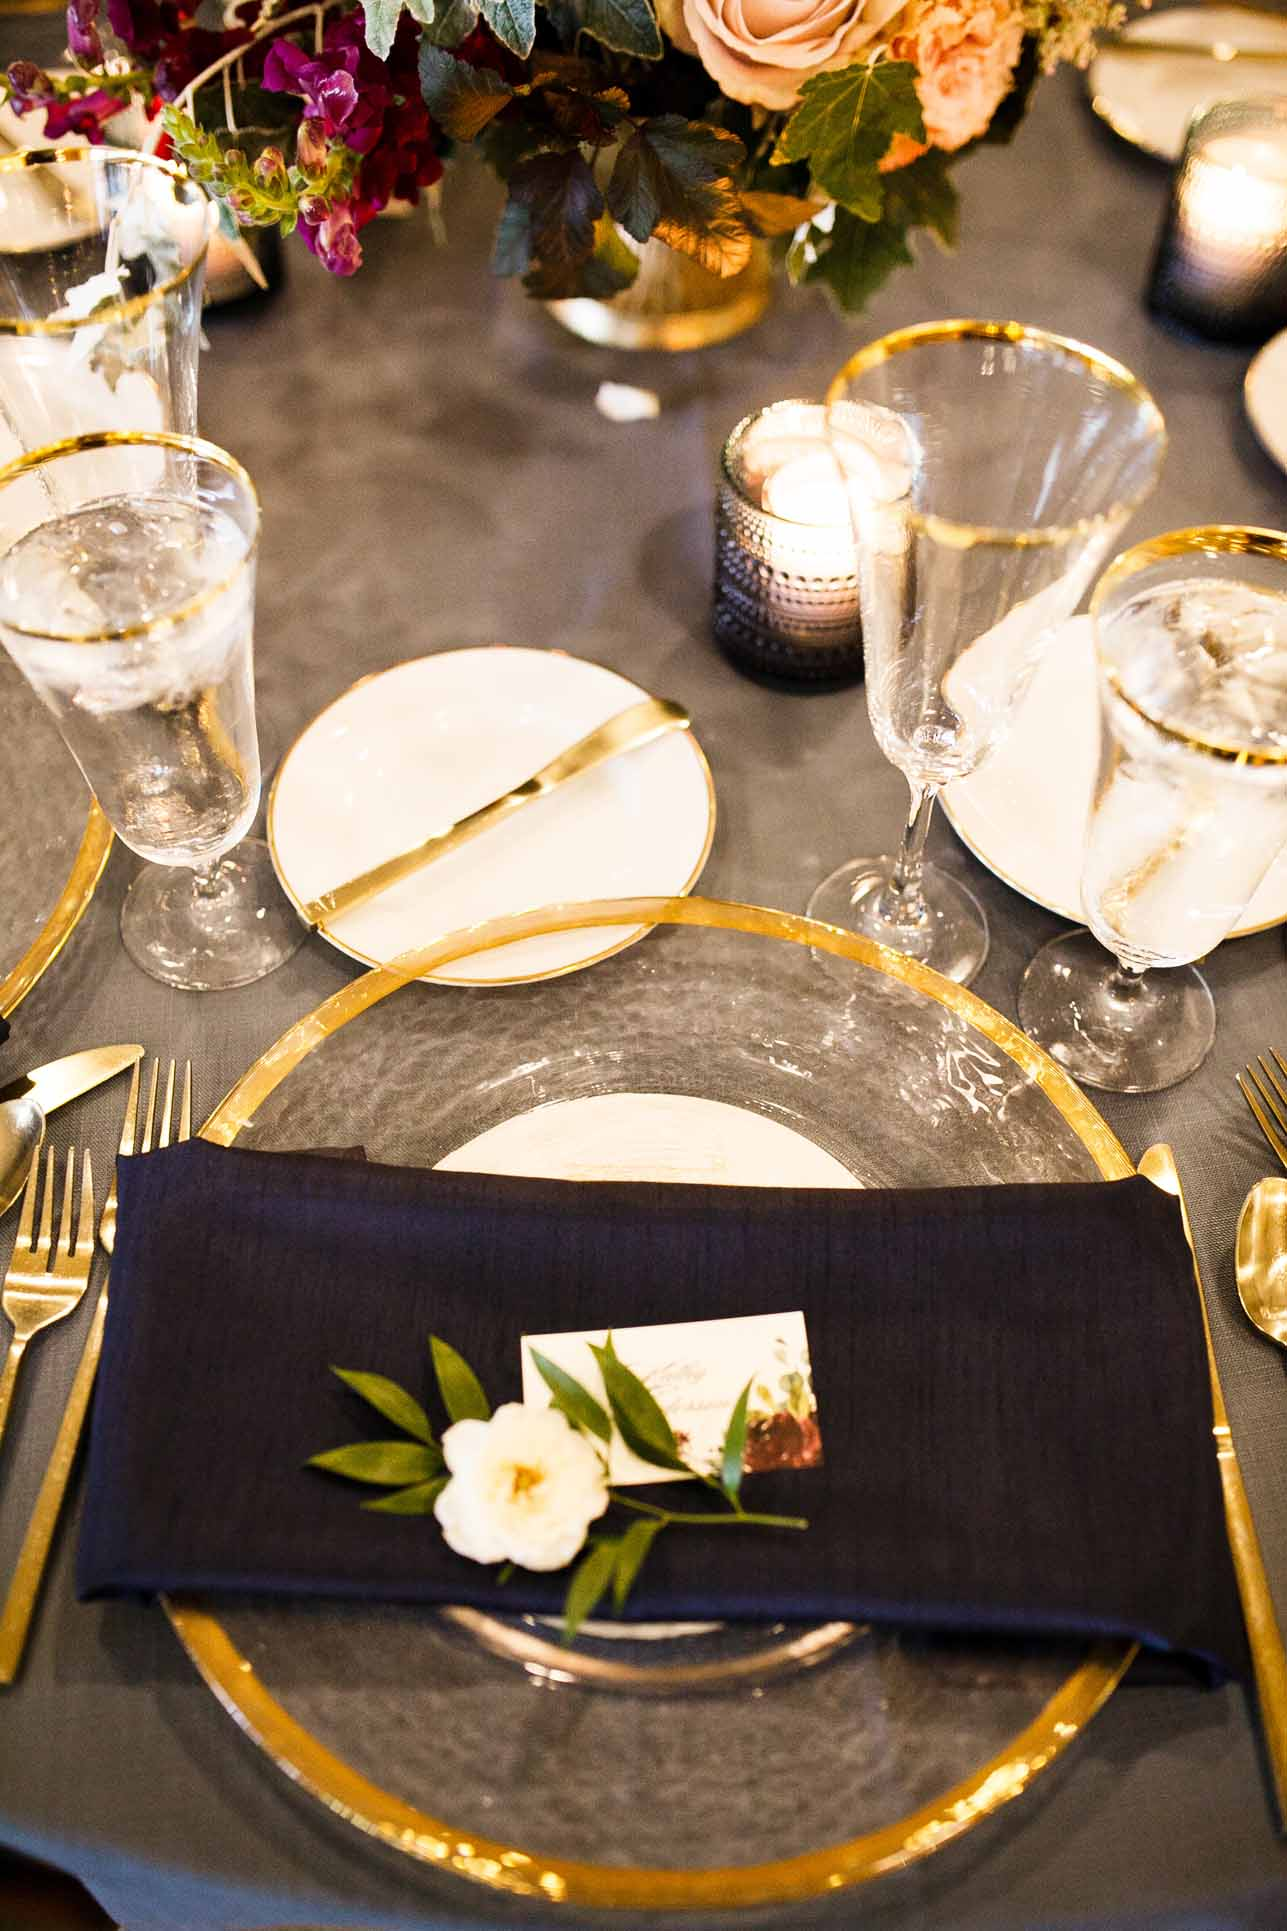 Table setting with navy napkin and gold rimmed glass charger plate